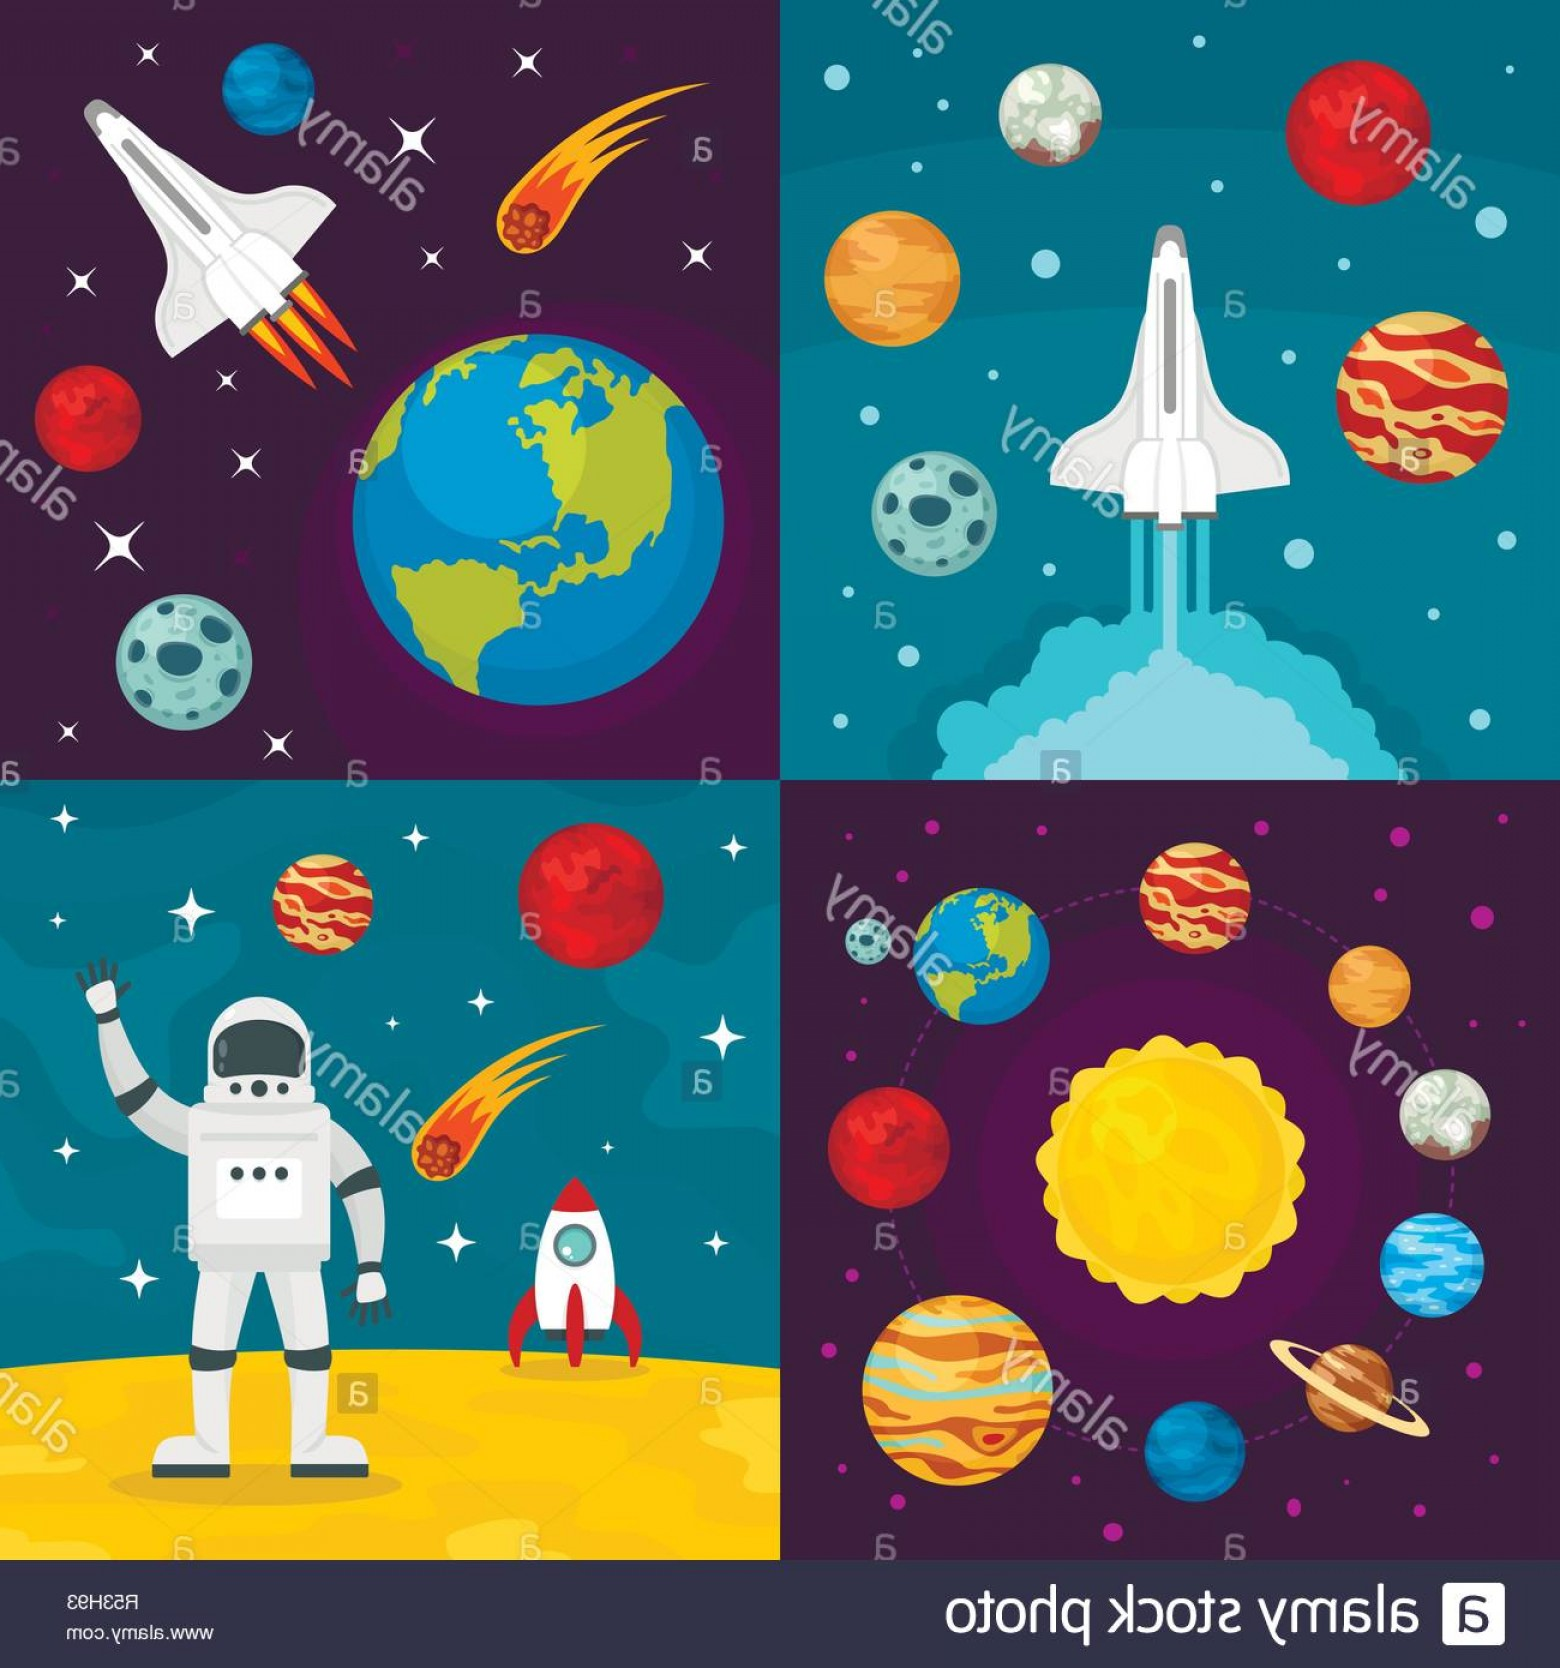 Planets Vector Graphics: Space Planets Banner Set Flat Illustration Of Space Planets Vector Banner Set For Web Design Image